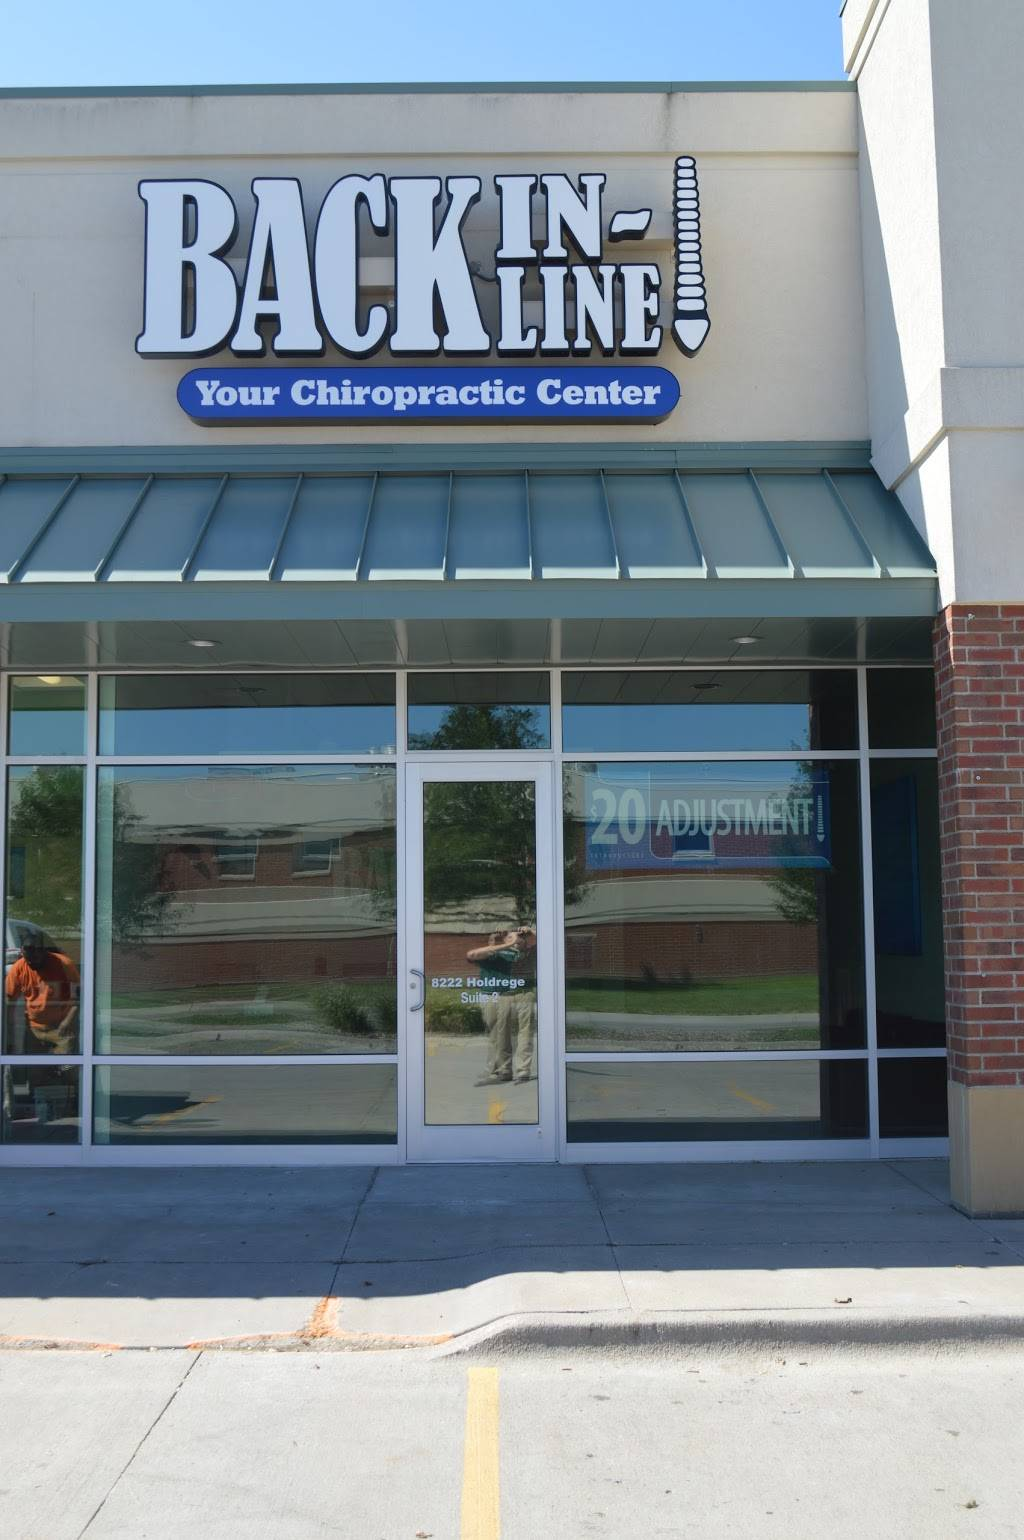 Back In-line Chiropractic, 8222 Holdrege St #2, Lincoln ...